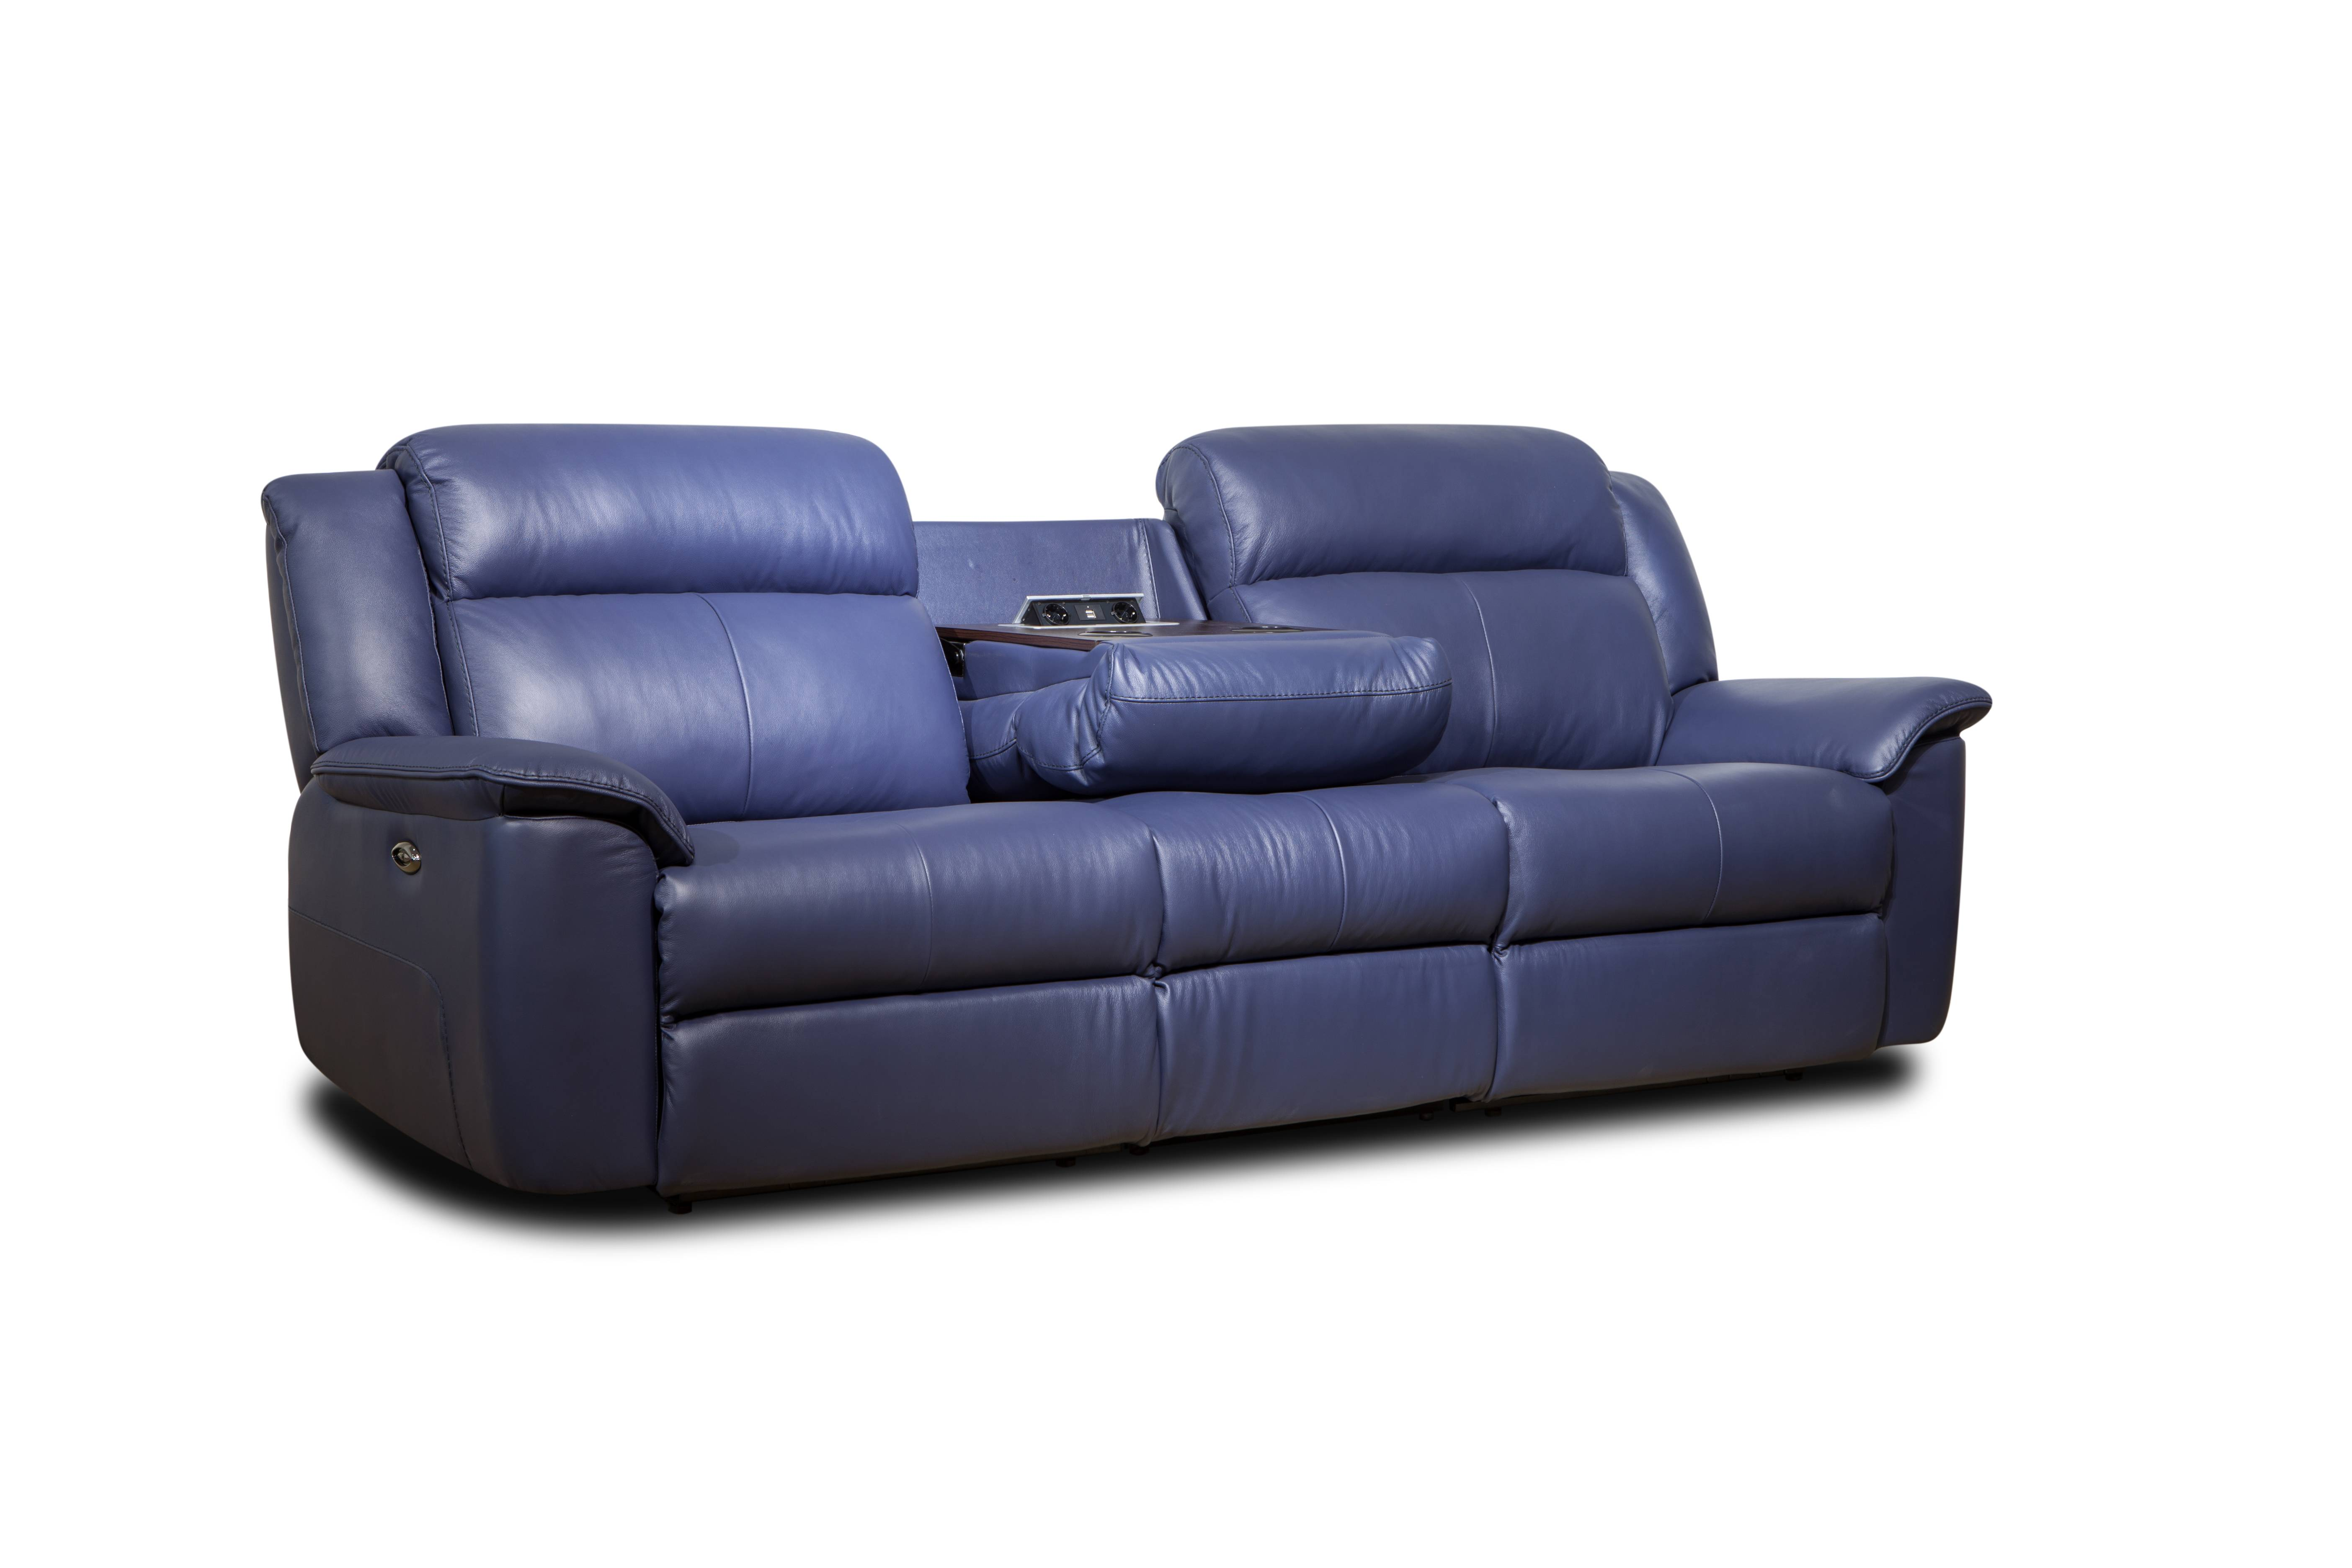 Custom-made fashion living room leather recliner sofa